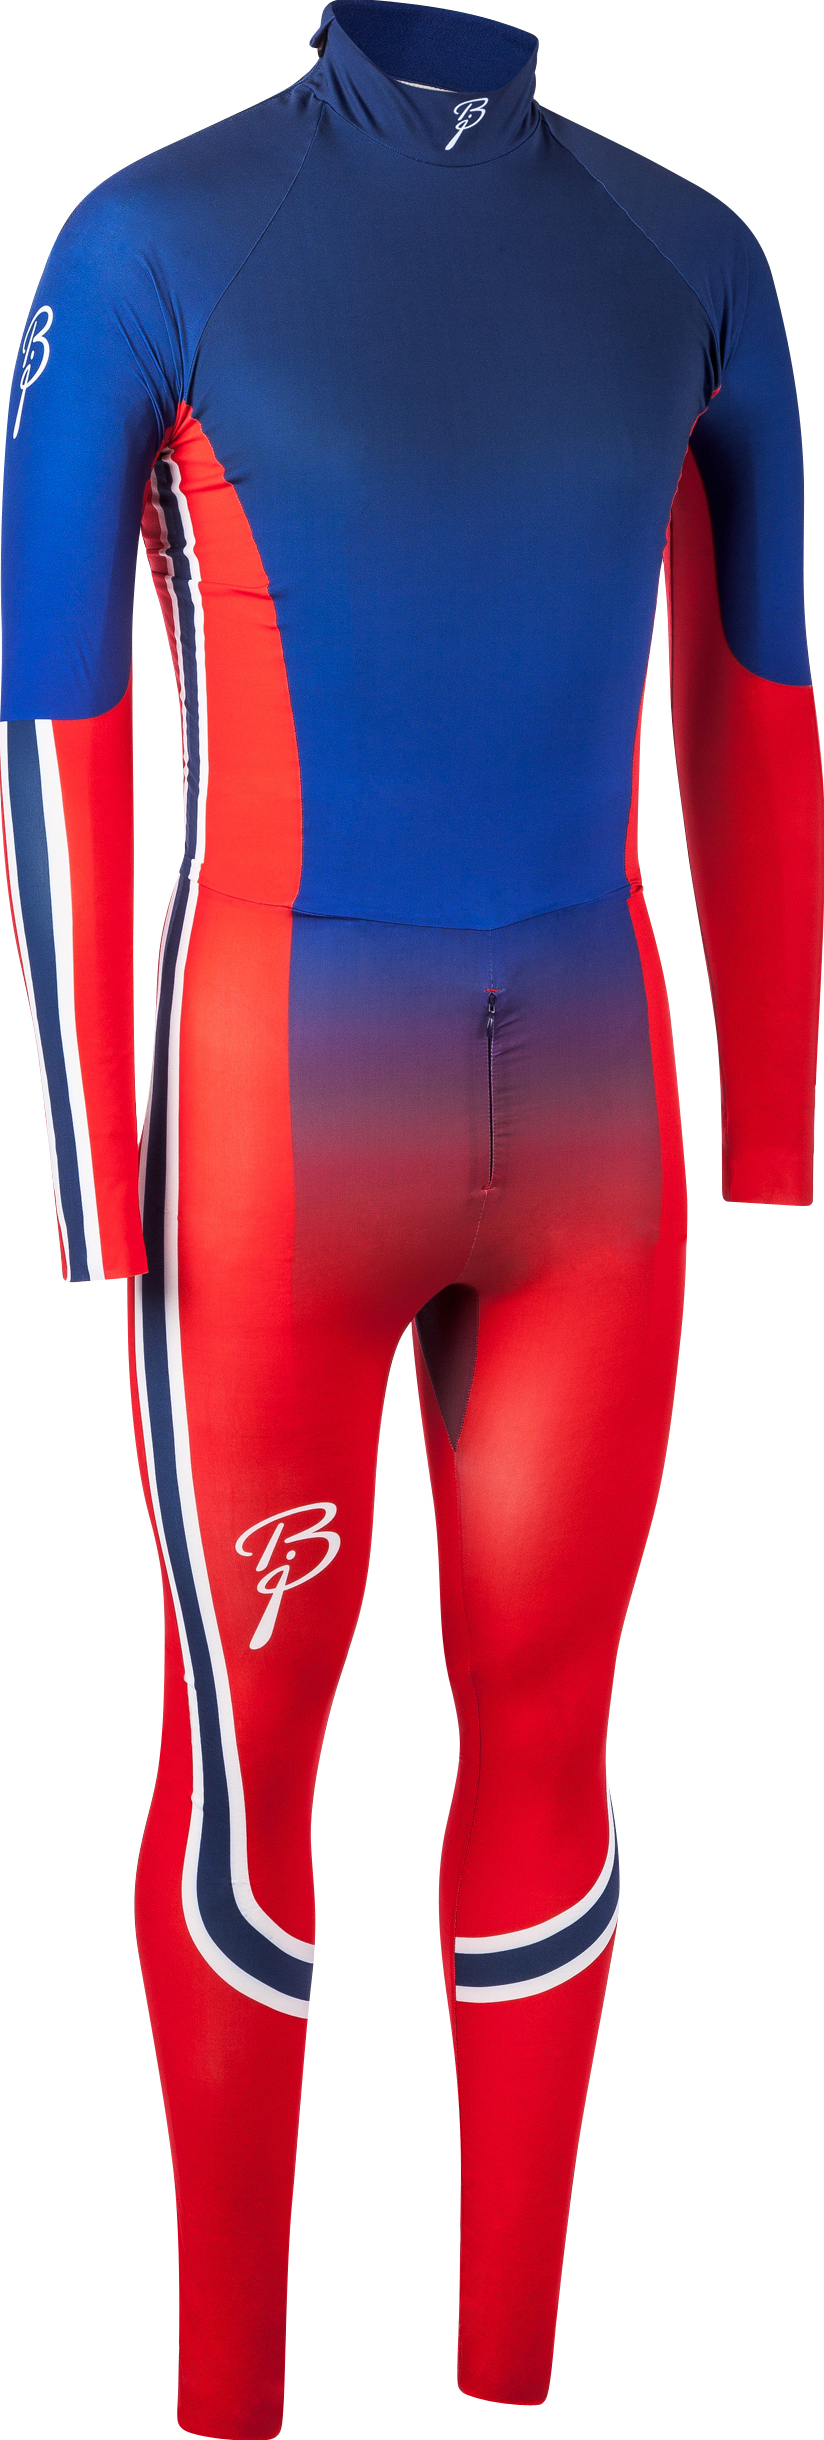 detail BJORN DAEHLIE NATIONS RACE SUIT 2 pcs.